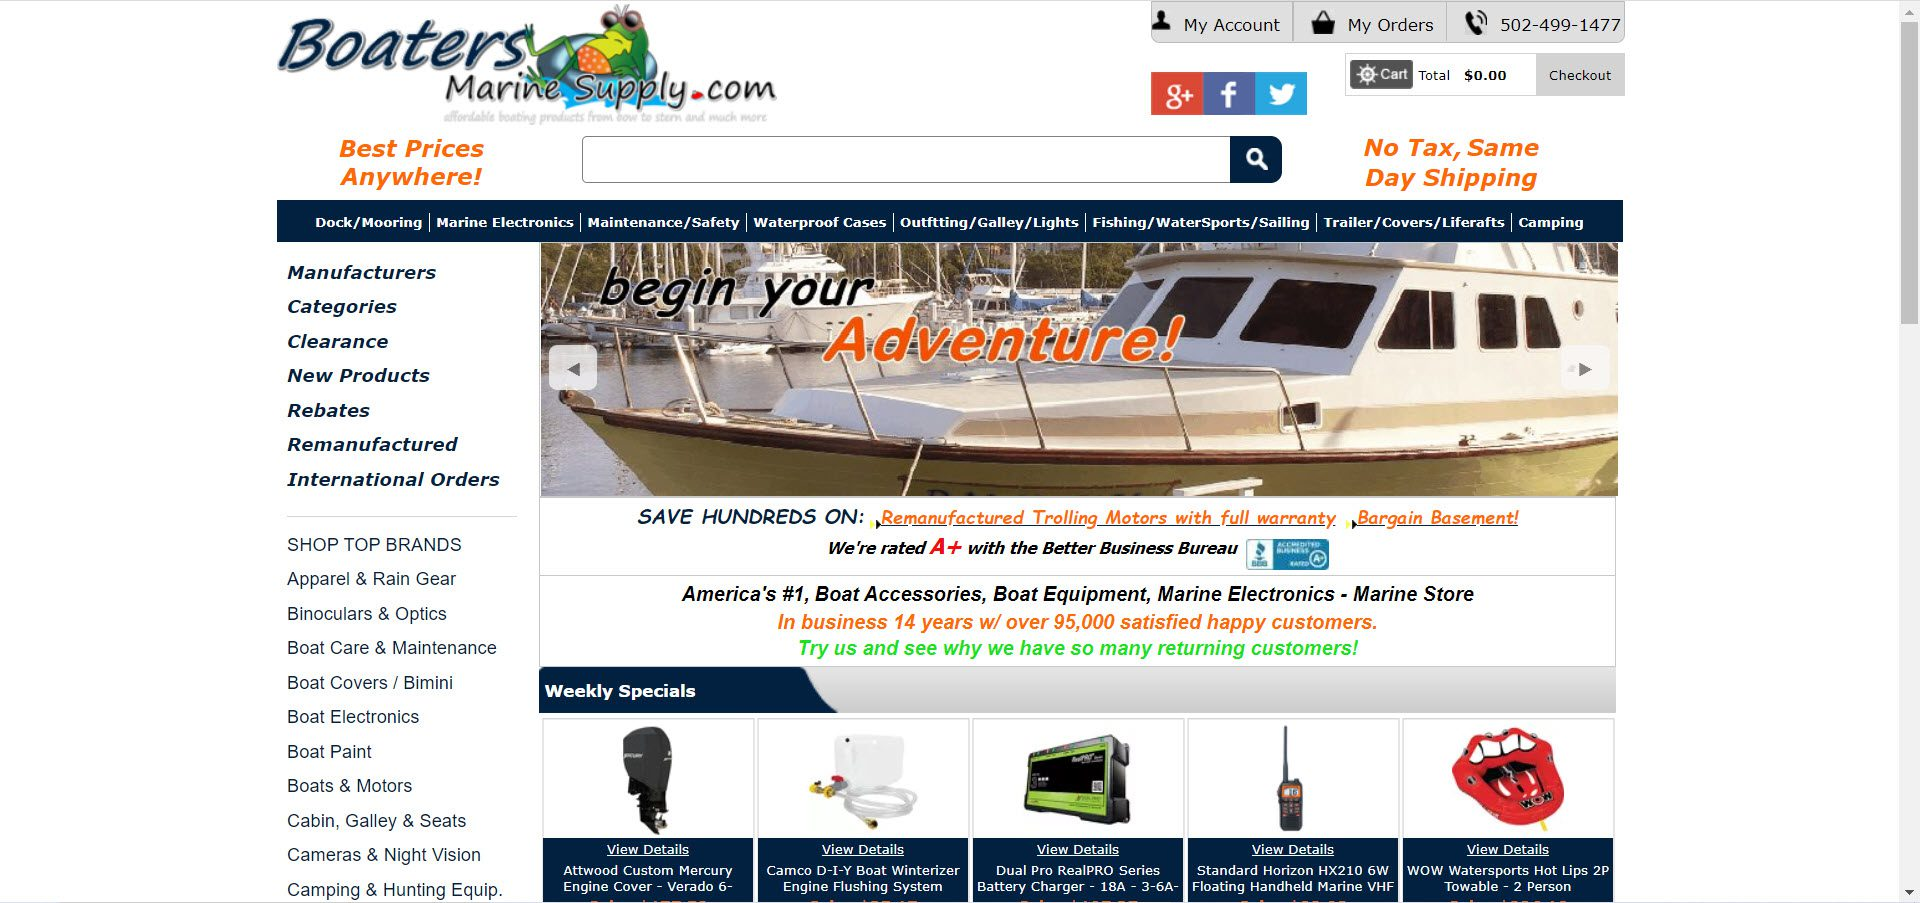 Boat Affiliate Programs - Boaters Marine Supply